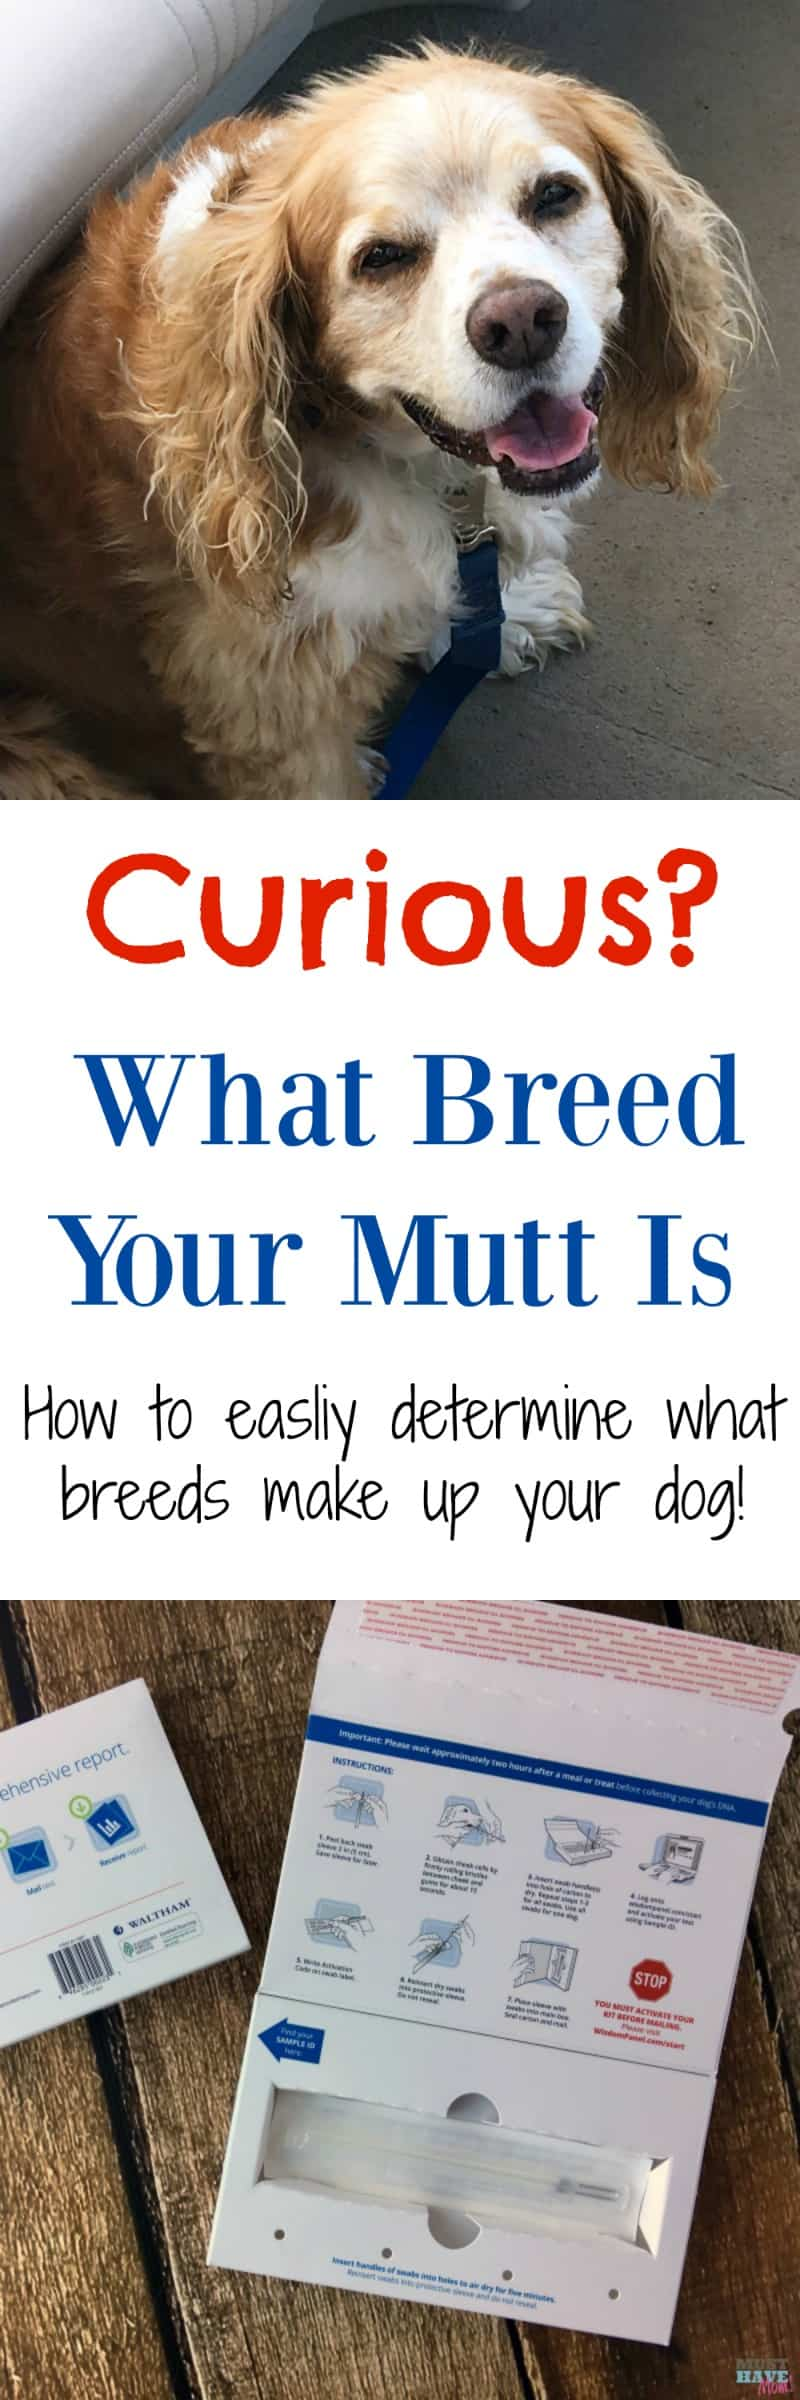 How To Determine What Breeds Your Dog Is Made Up Of! - Must Have Mom